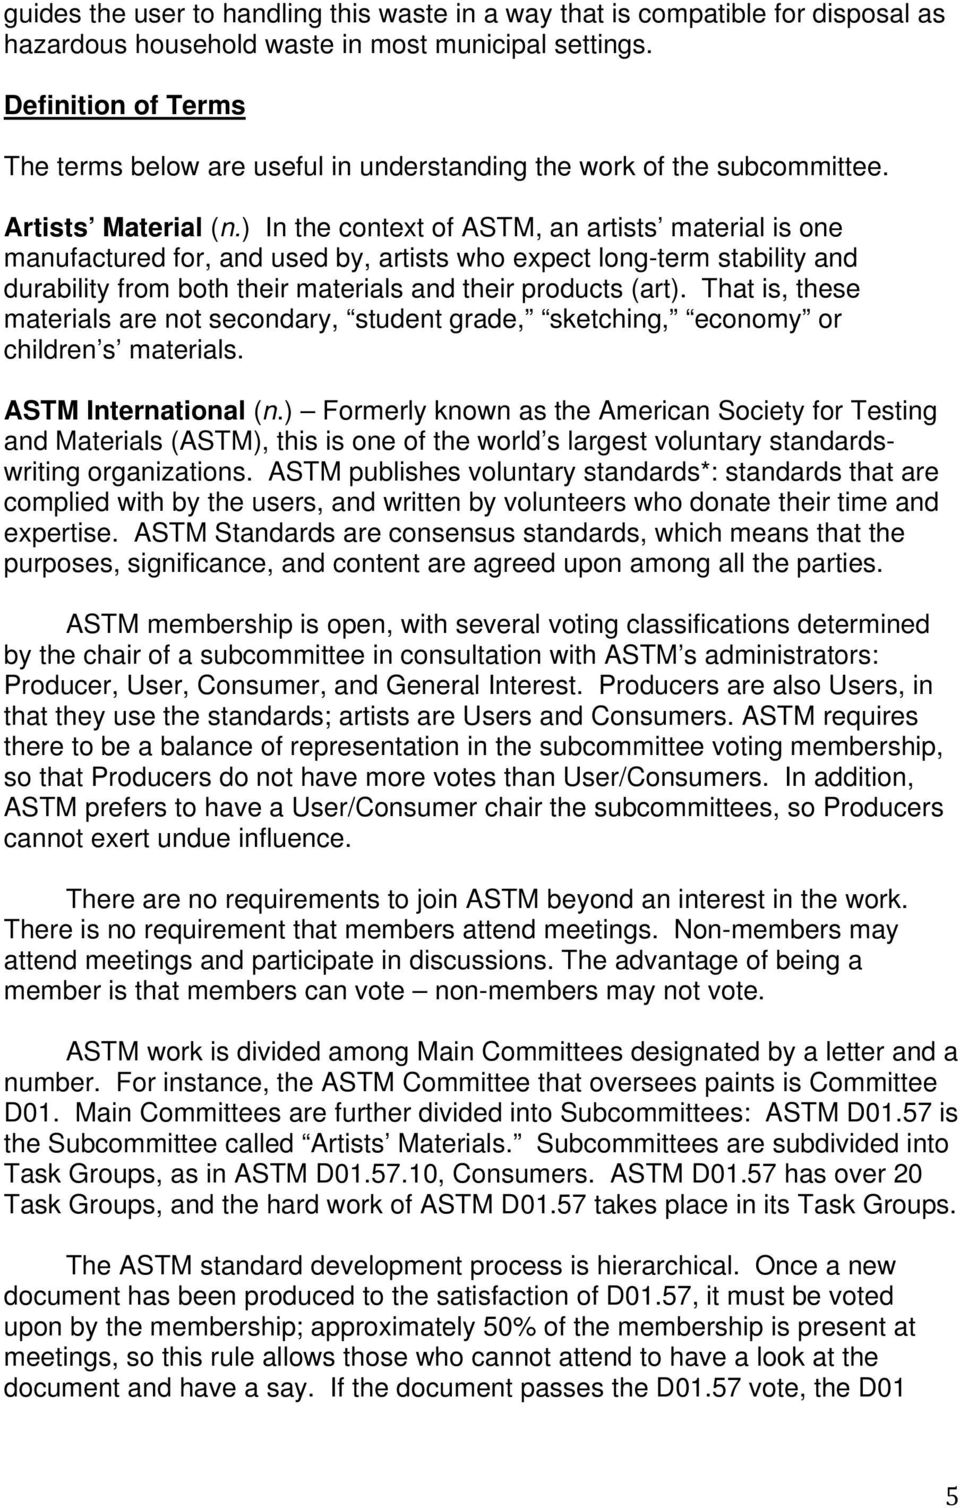 A Narrative Summary of ASTM International Standards Pertaining to